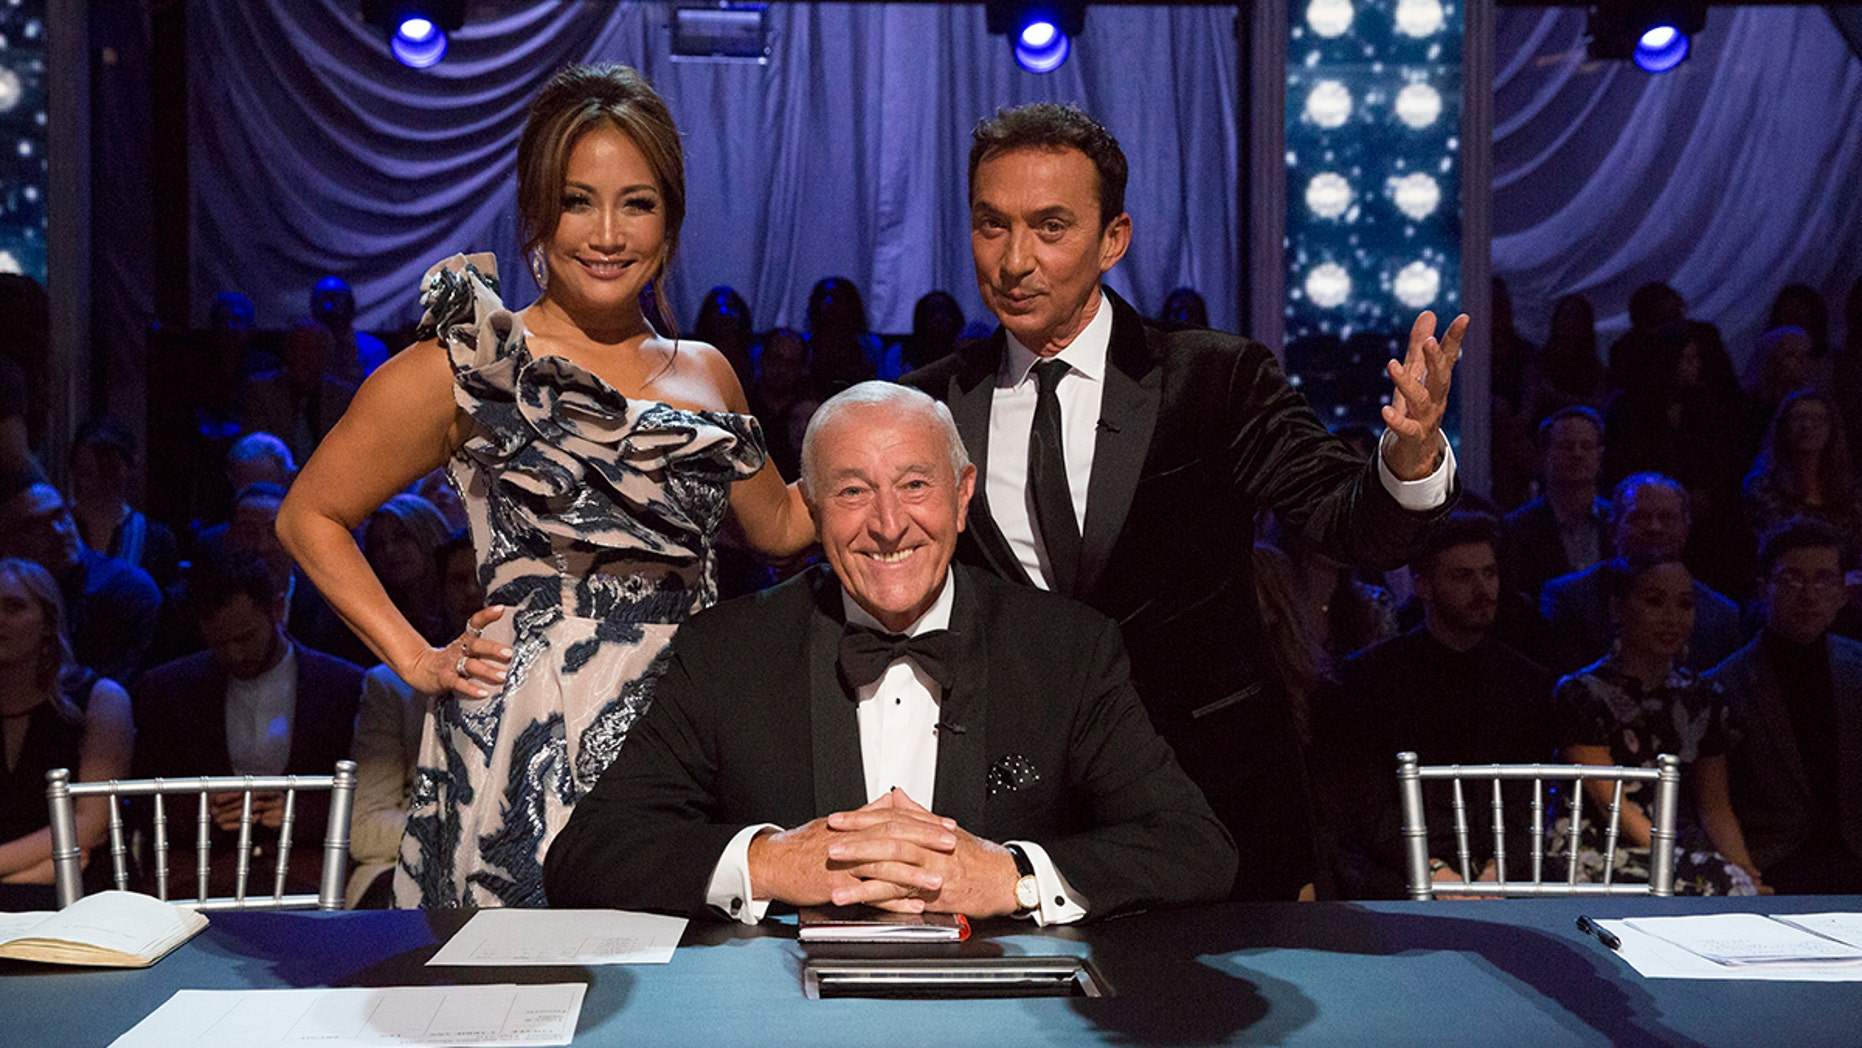 """DANCING WITH THE STARS: ATHLETES - """"Episode 2604"""" - After three weeks of stunning competitive dancing, the final three couples advance to the finals of """"Dancing with the Stars: Athletes,"""" live on MONDAY, MAY 21 (8:00-9:00 p.m. EDT), on The ABC Television Network. (ABC/Kelsey McNeal)CARRIE ANN INABA, LEN GOODMAN, BRUNO TONIOLI"""